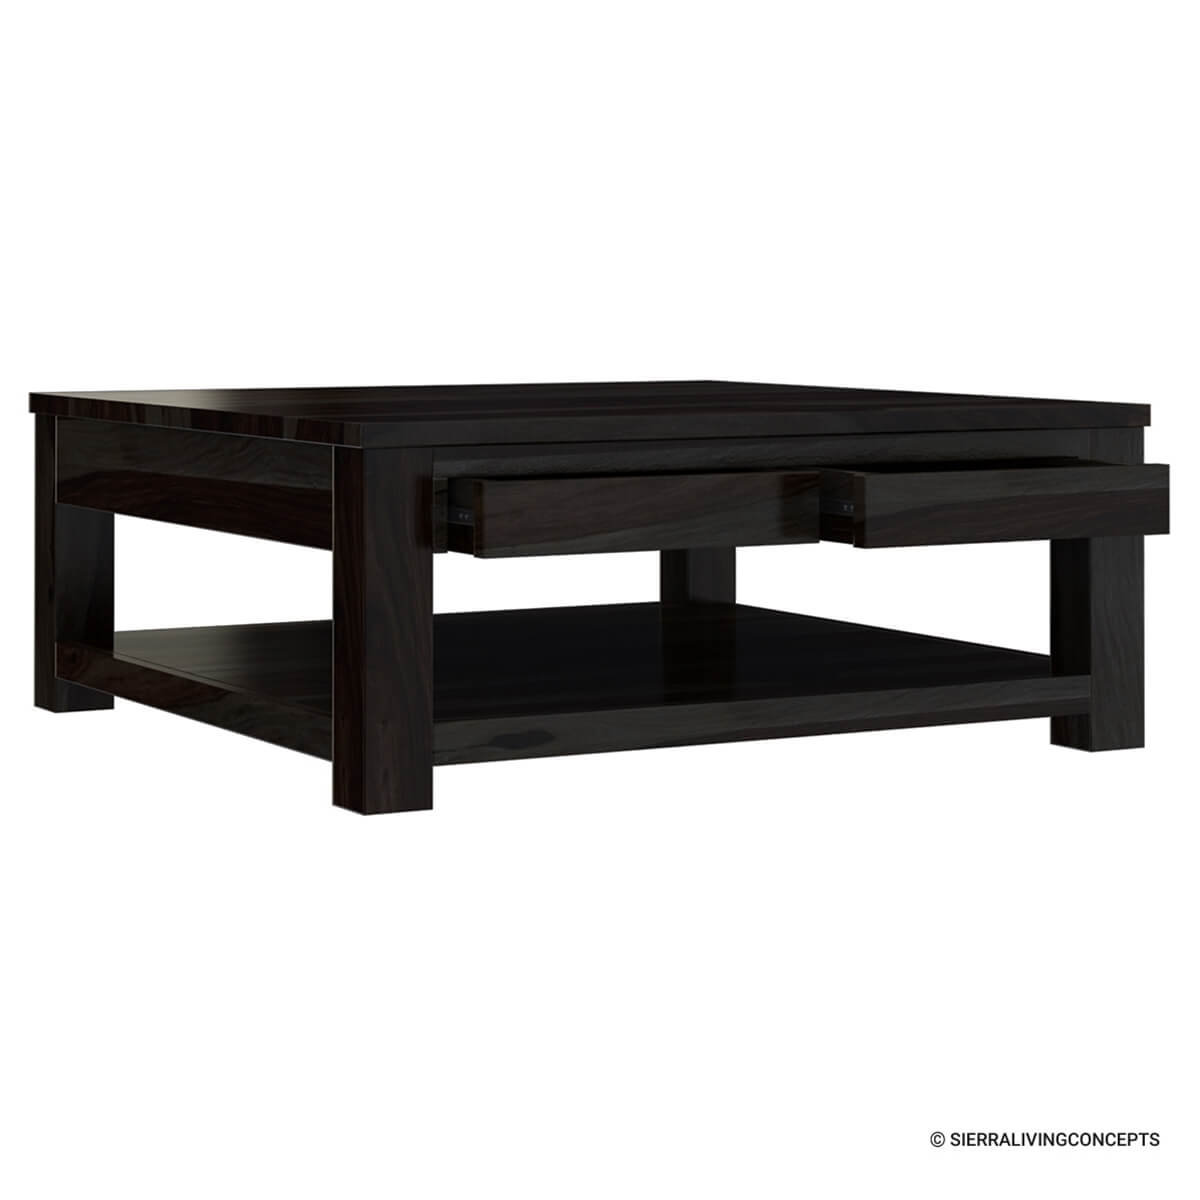 Large rosewood classic square espresso coffee table Large square coffee table